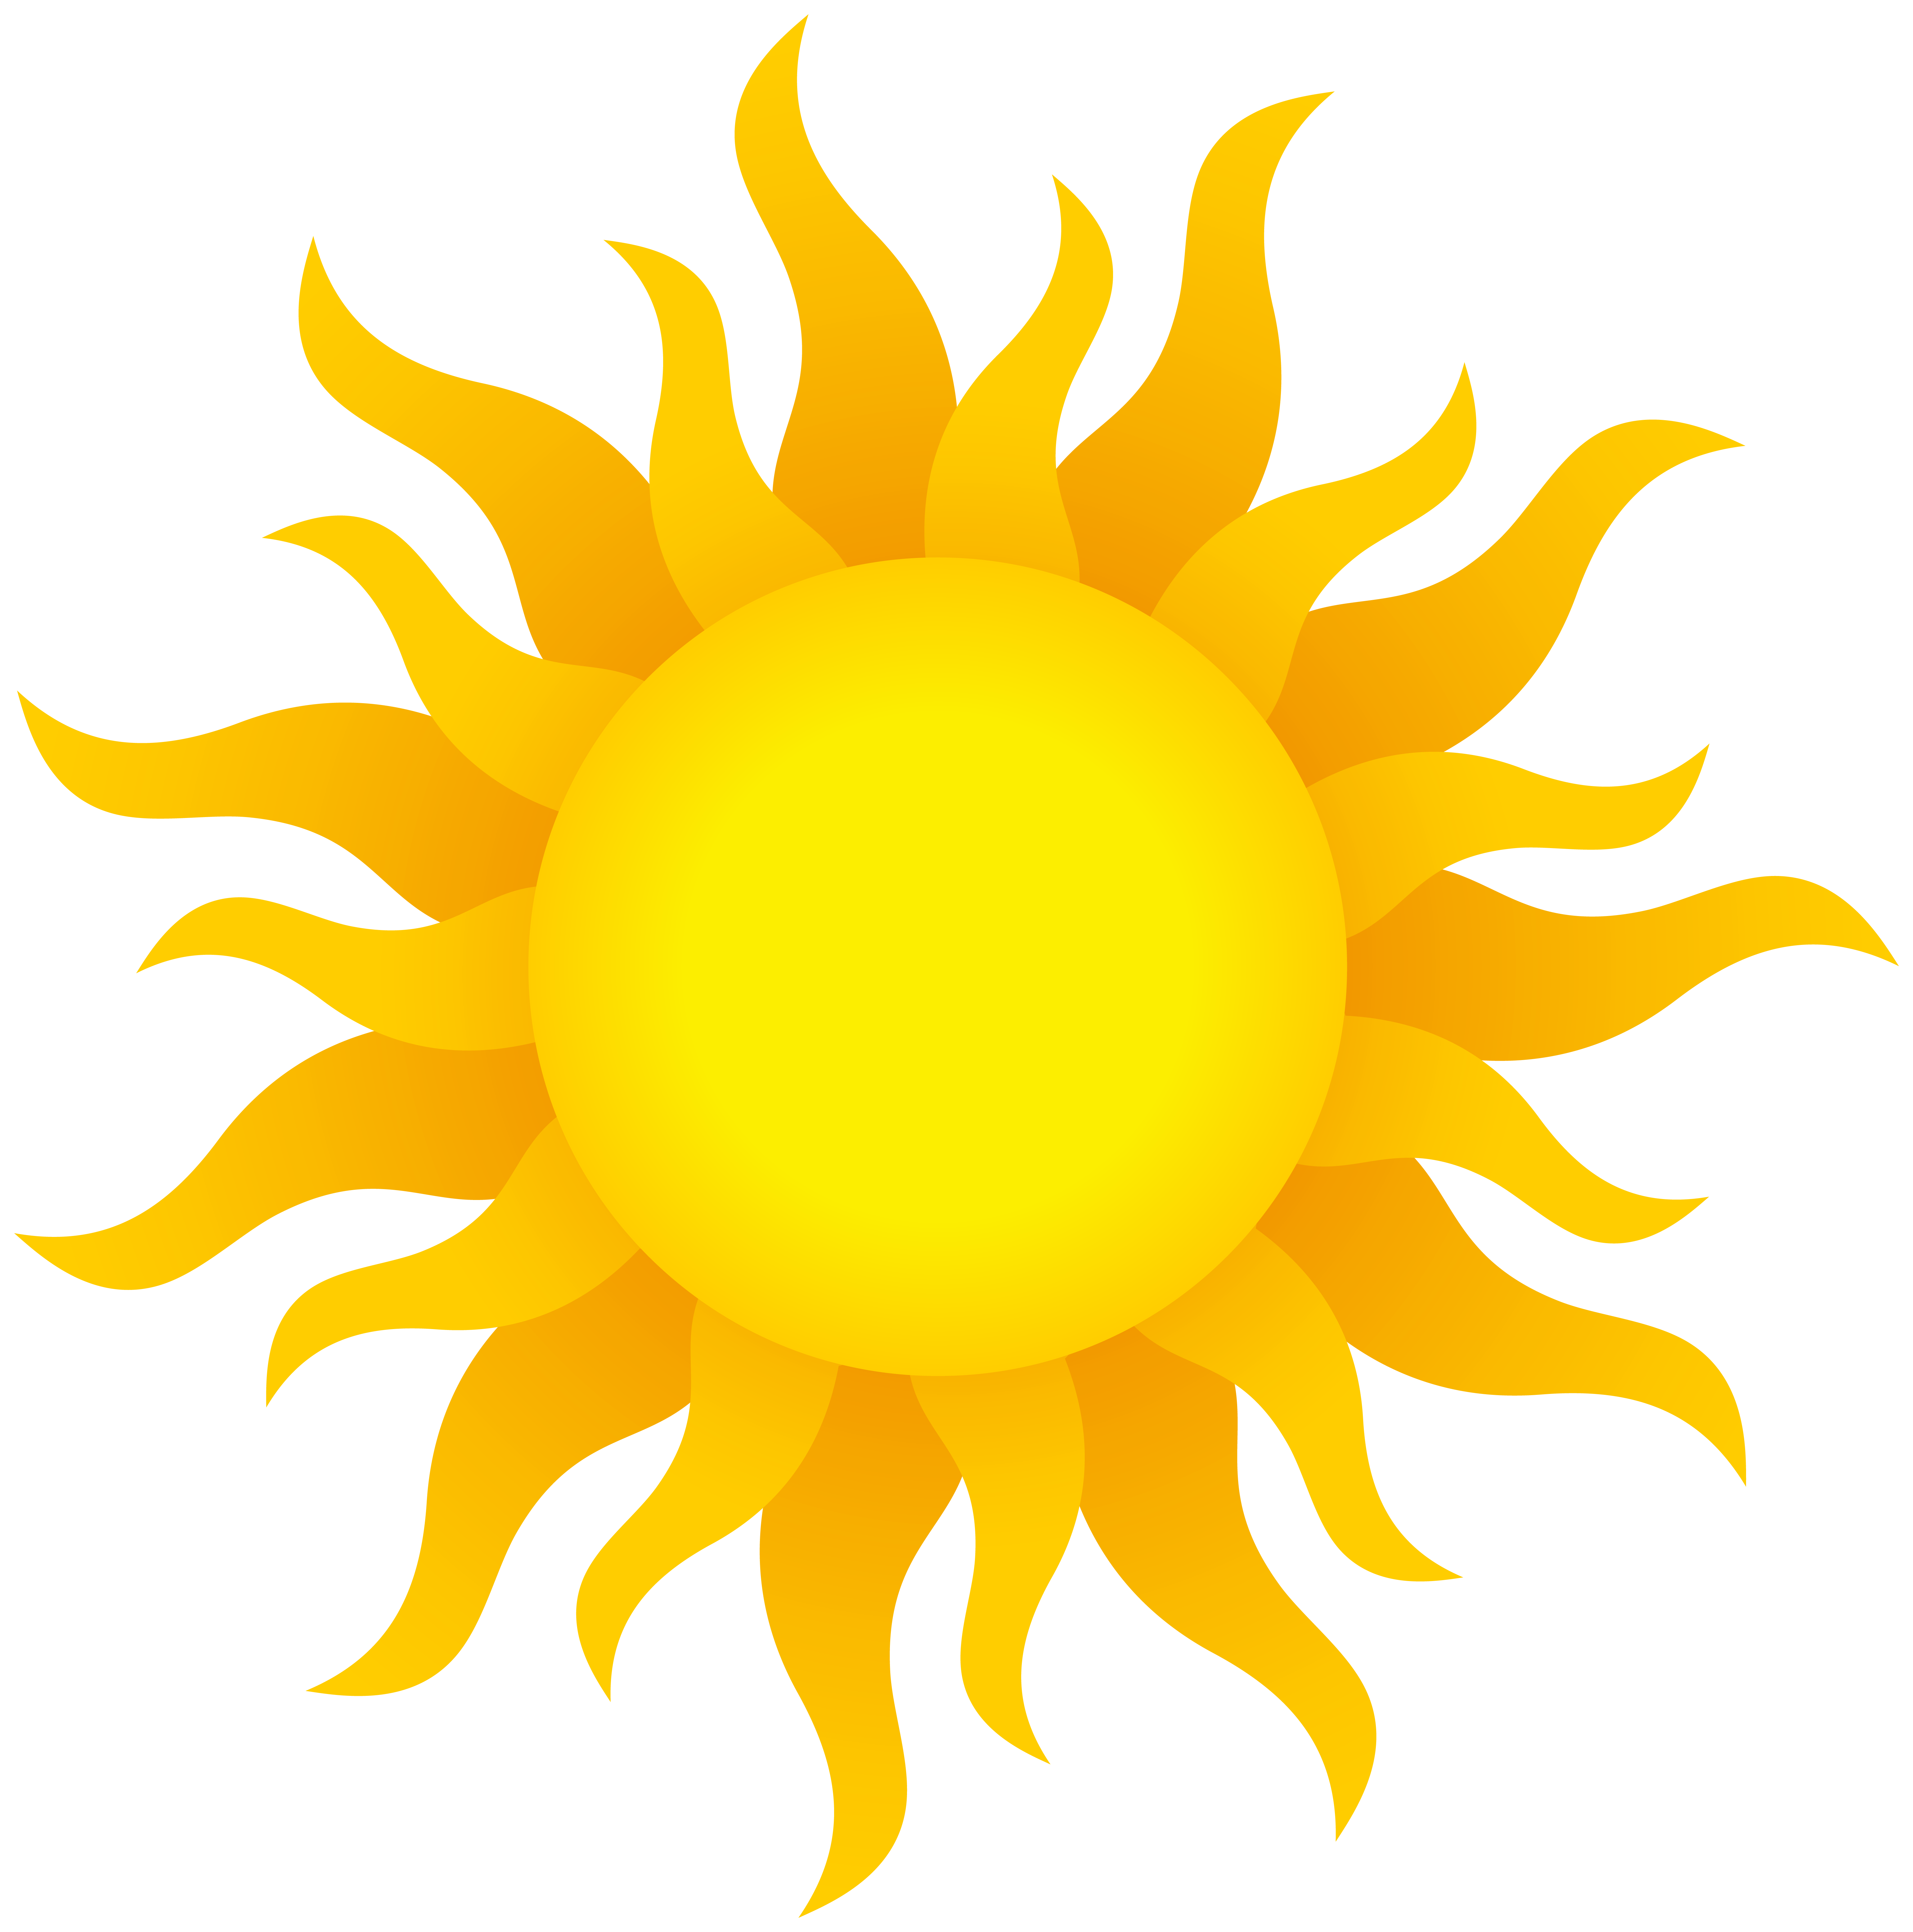 Sun Transparent Png Clip Art Image Gallery Yopriceville High Quality Images And Transparent Png Free Clipart Sun Painting Sun Art Sun Clip Art